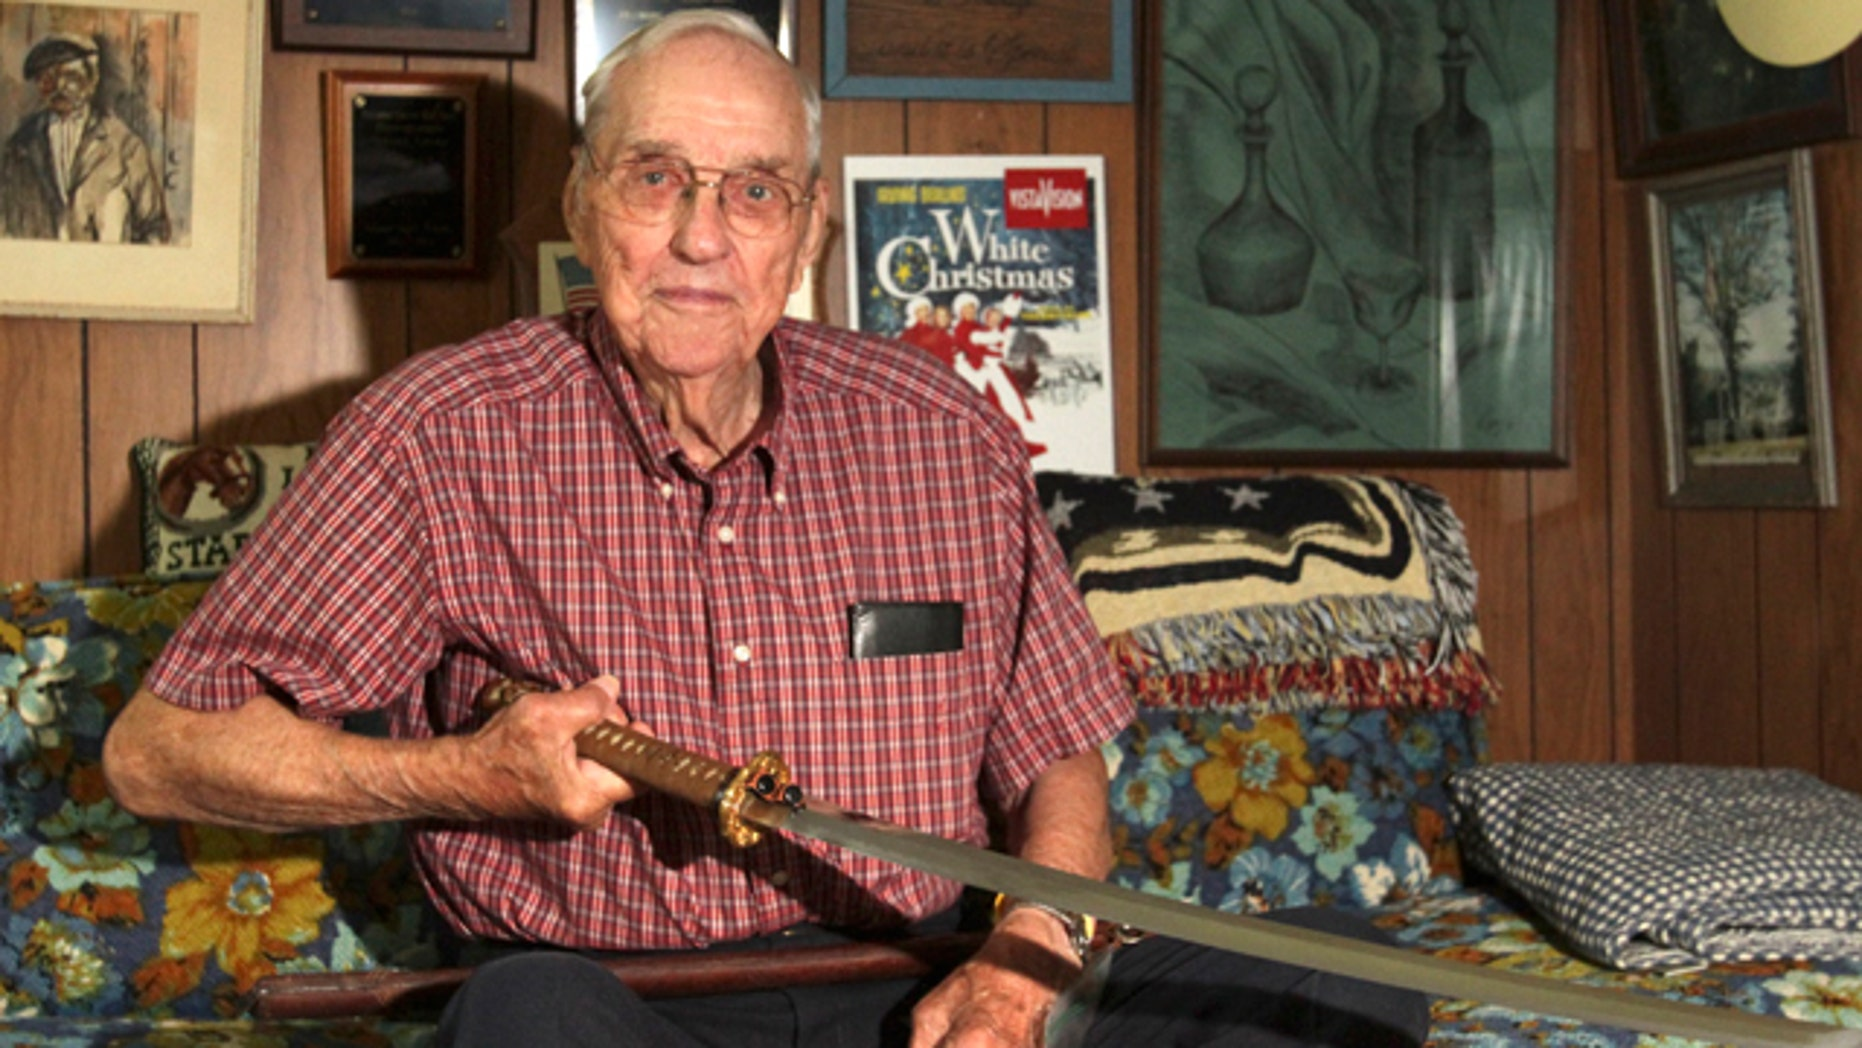 Sept. 10, 2013: Orval Amdahl, 94, of Lanesboro, Minn, holds a sword he took from Japan when he was a captain in the Marines in 1945, at his home in Lanesboro, Minn.